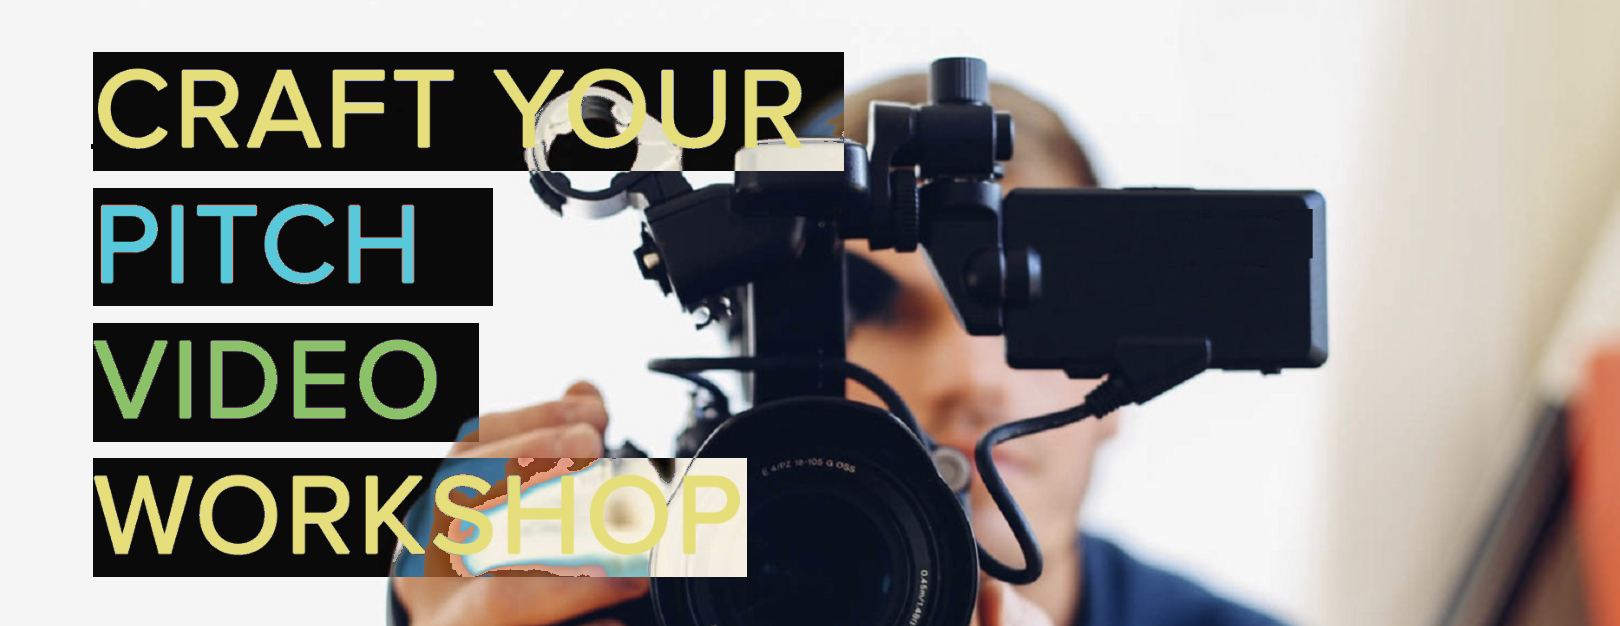 craft your pitch video workshop graphic